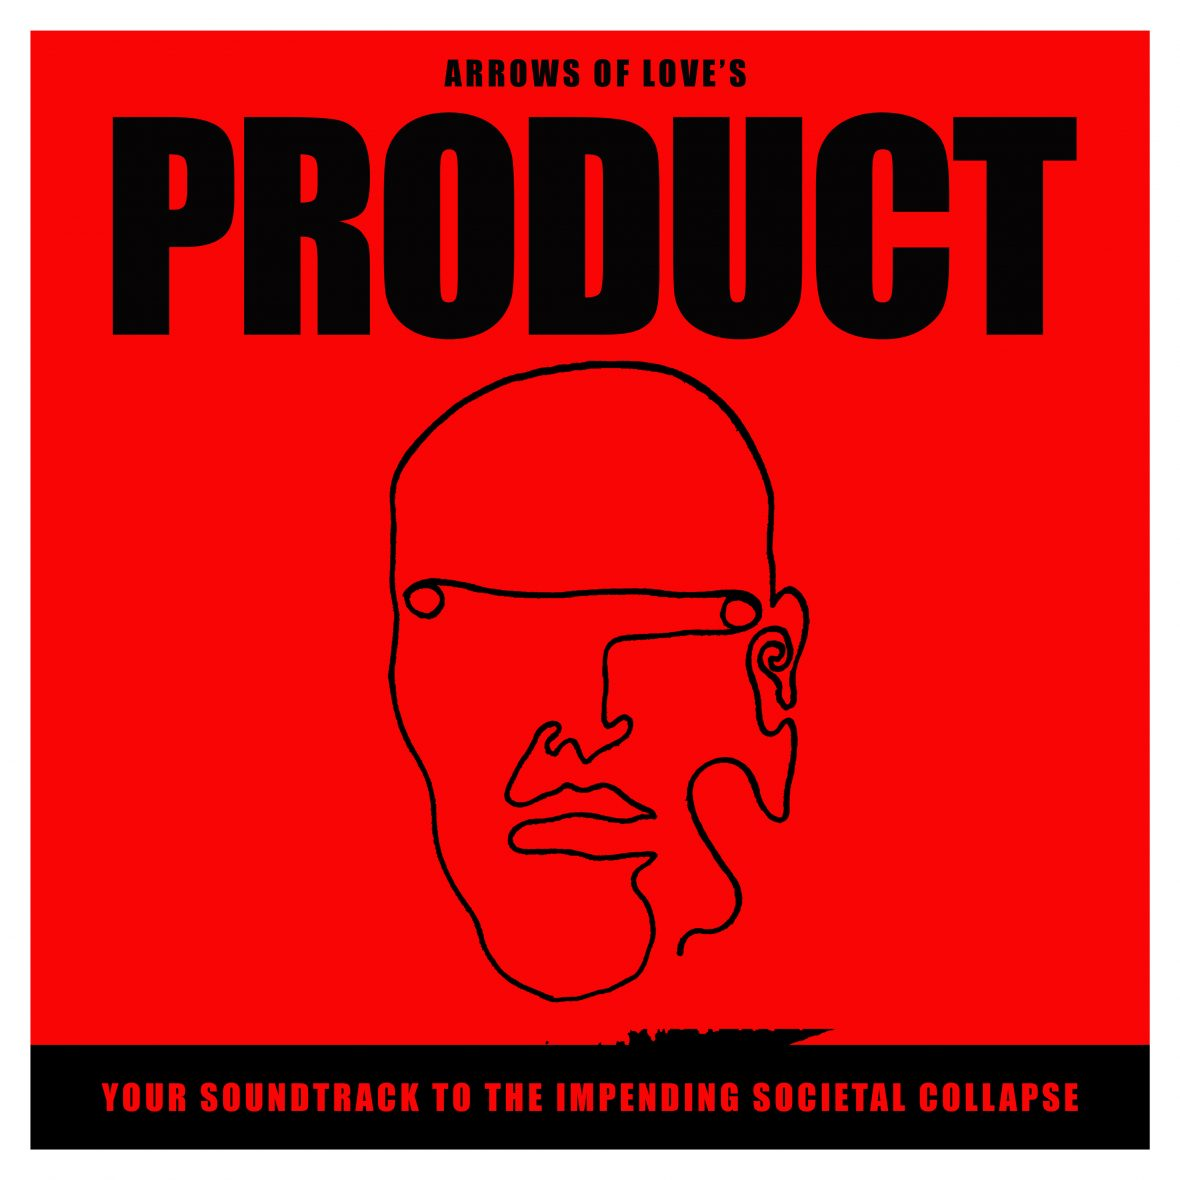 Arrows Of Love - 'Product: Your Soundtrack To The Impending Societal Collapse'